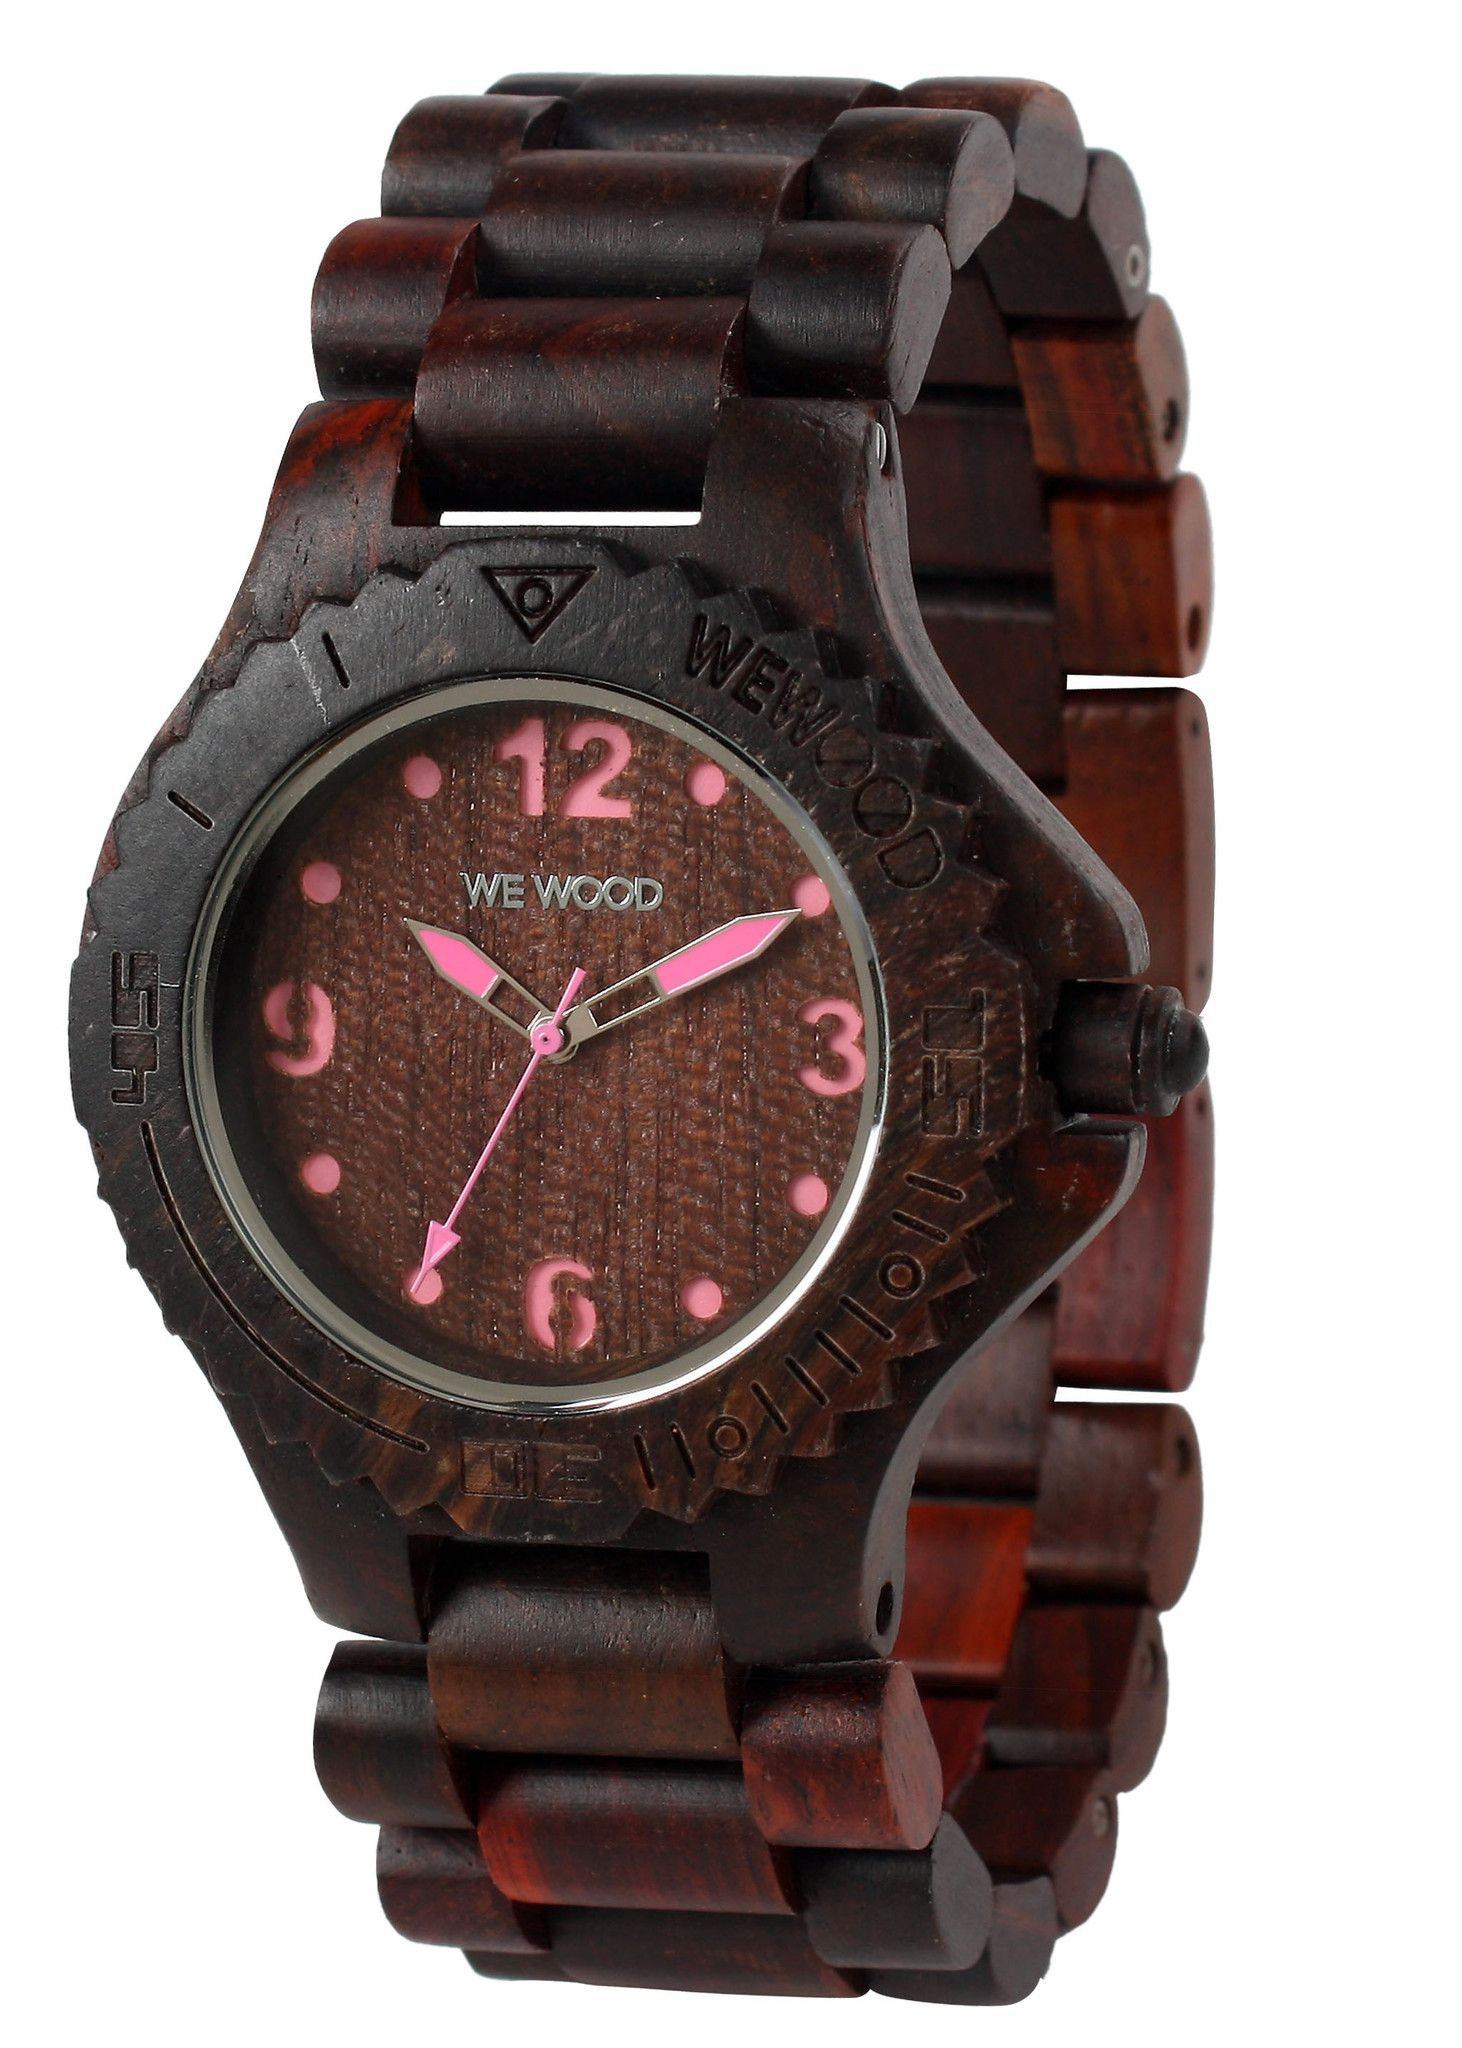 Wewood Wooden Watches Check Them Out Feelthewood Pink